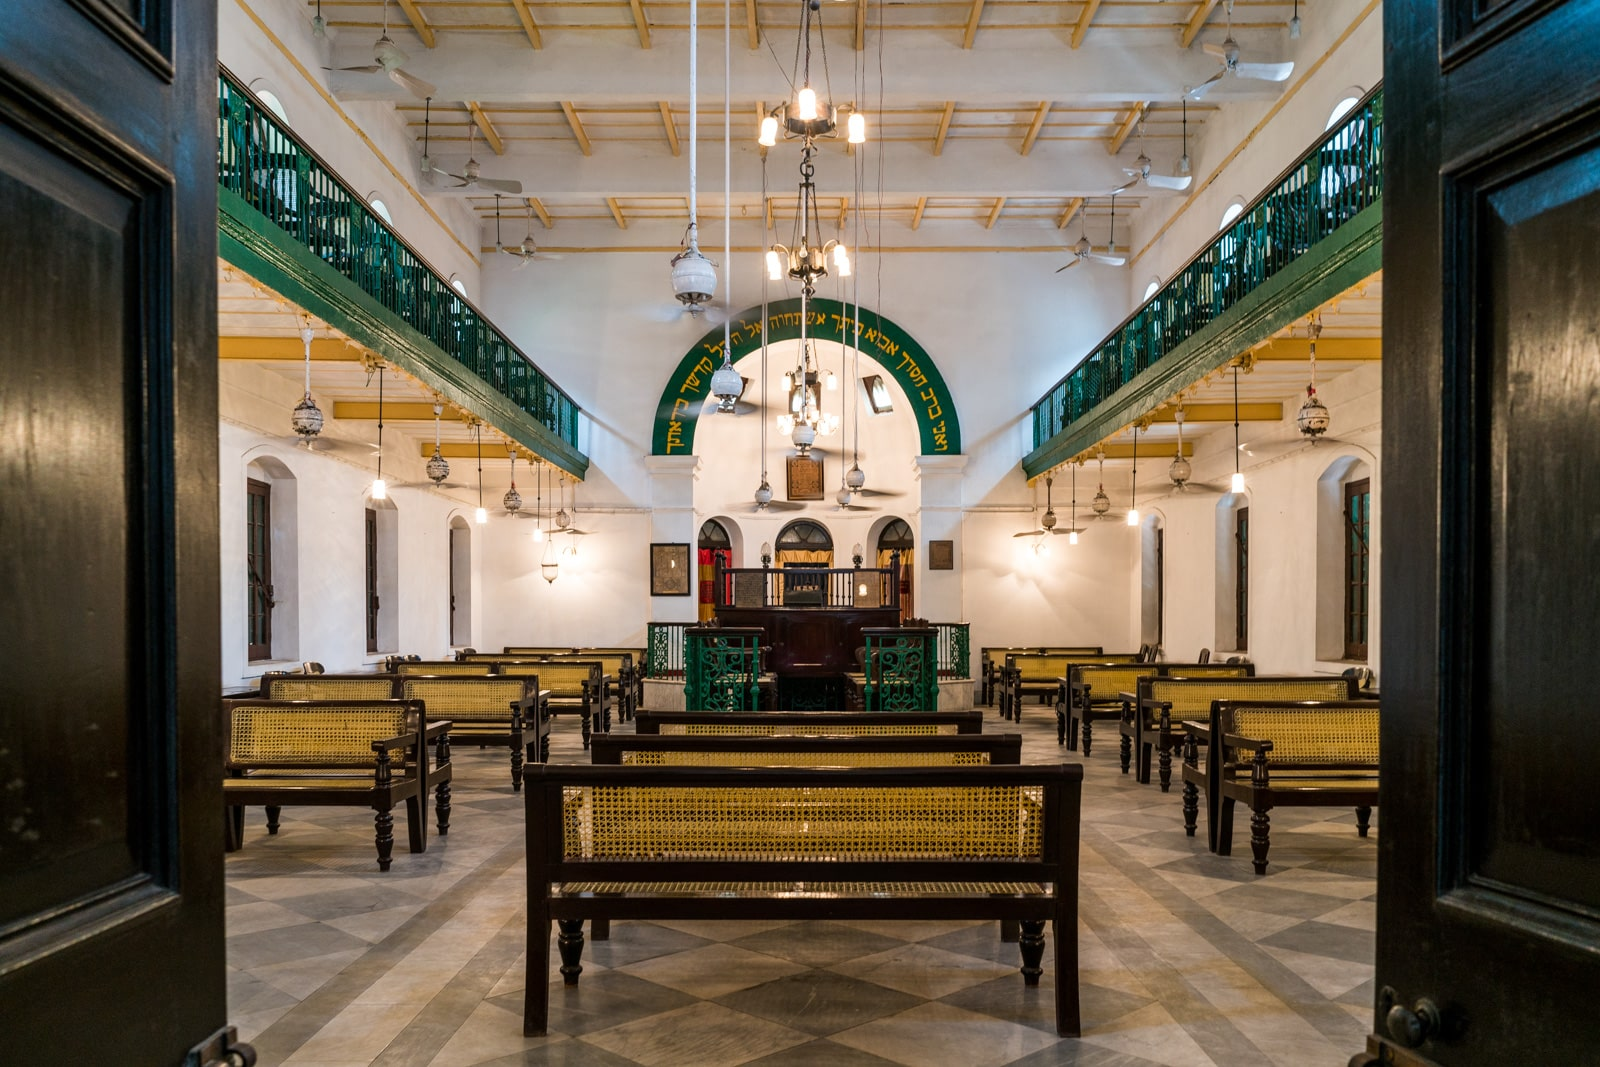 Reasons Kolkata is my favorite Indian megacity - Old Jewish Neveh Shalome synagogue in city center - Lost With Purpose travel blog